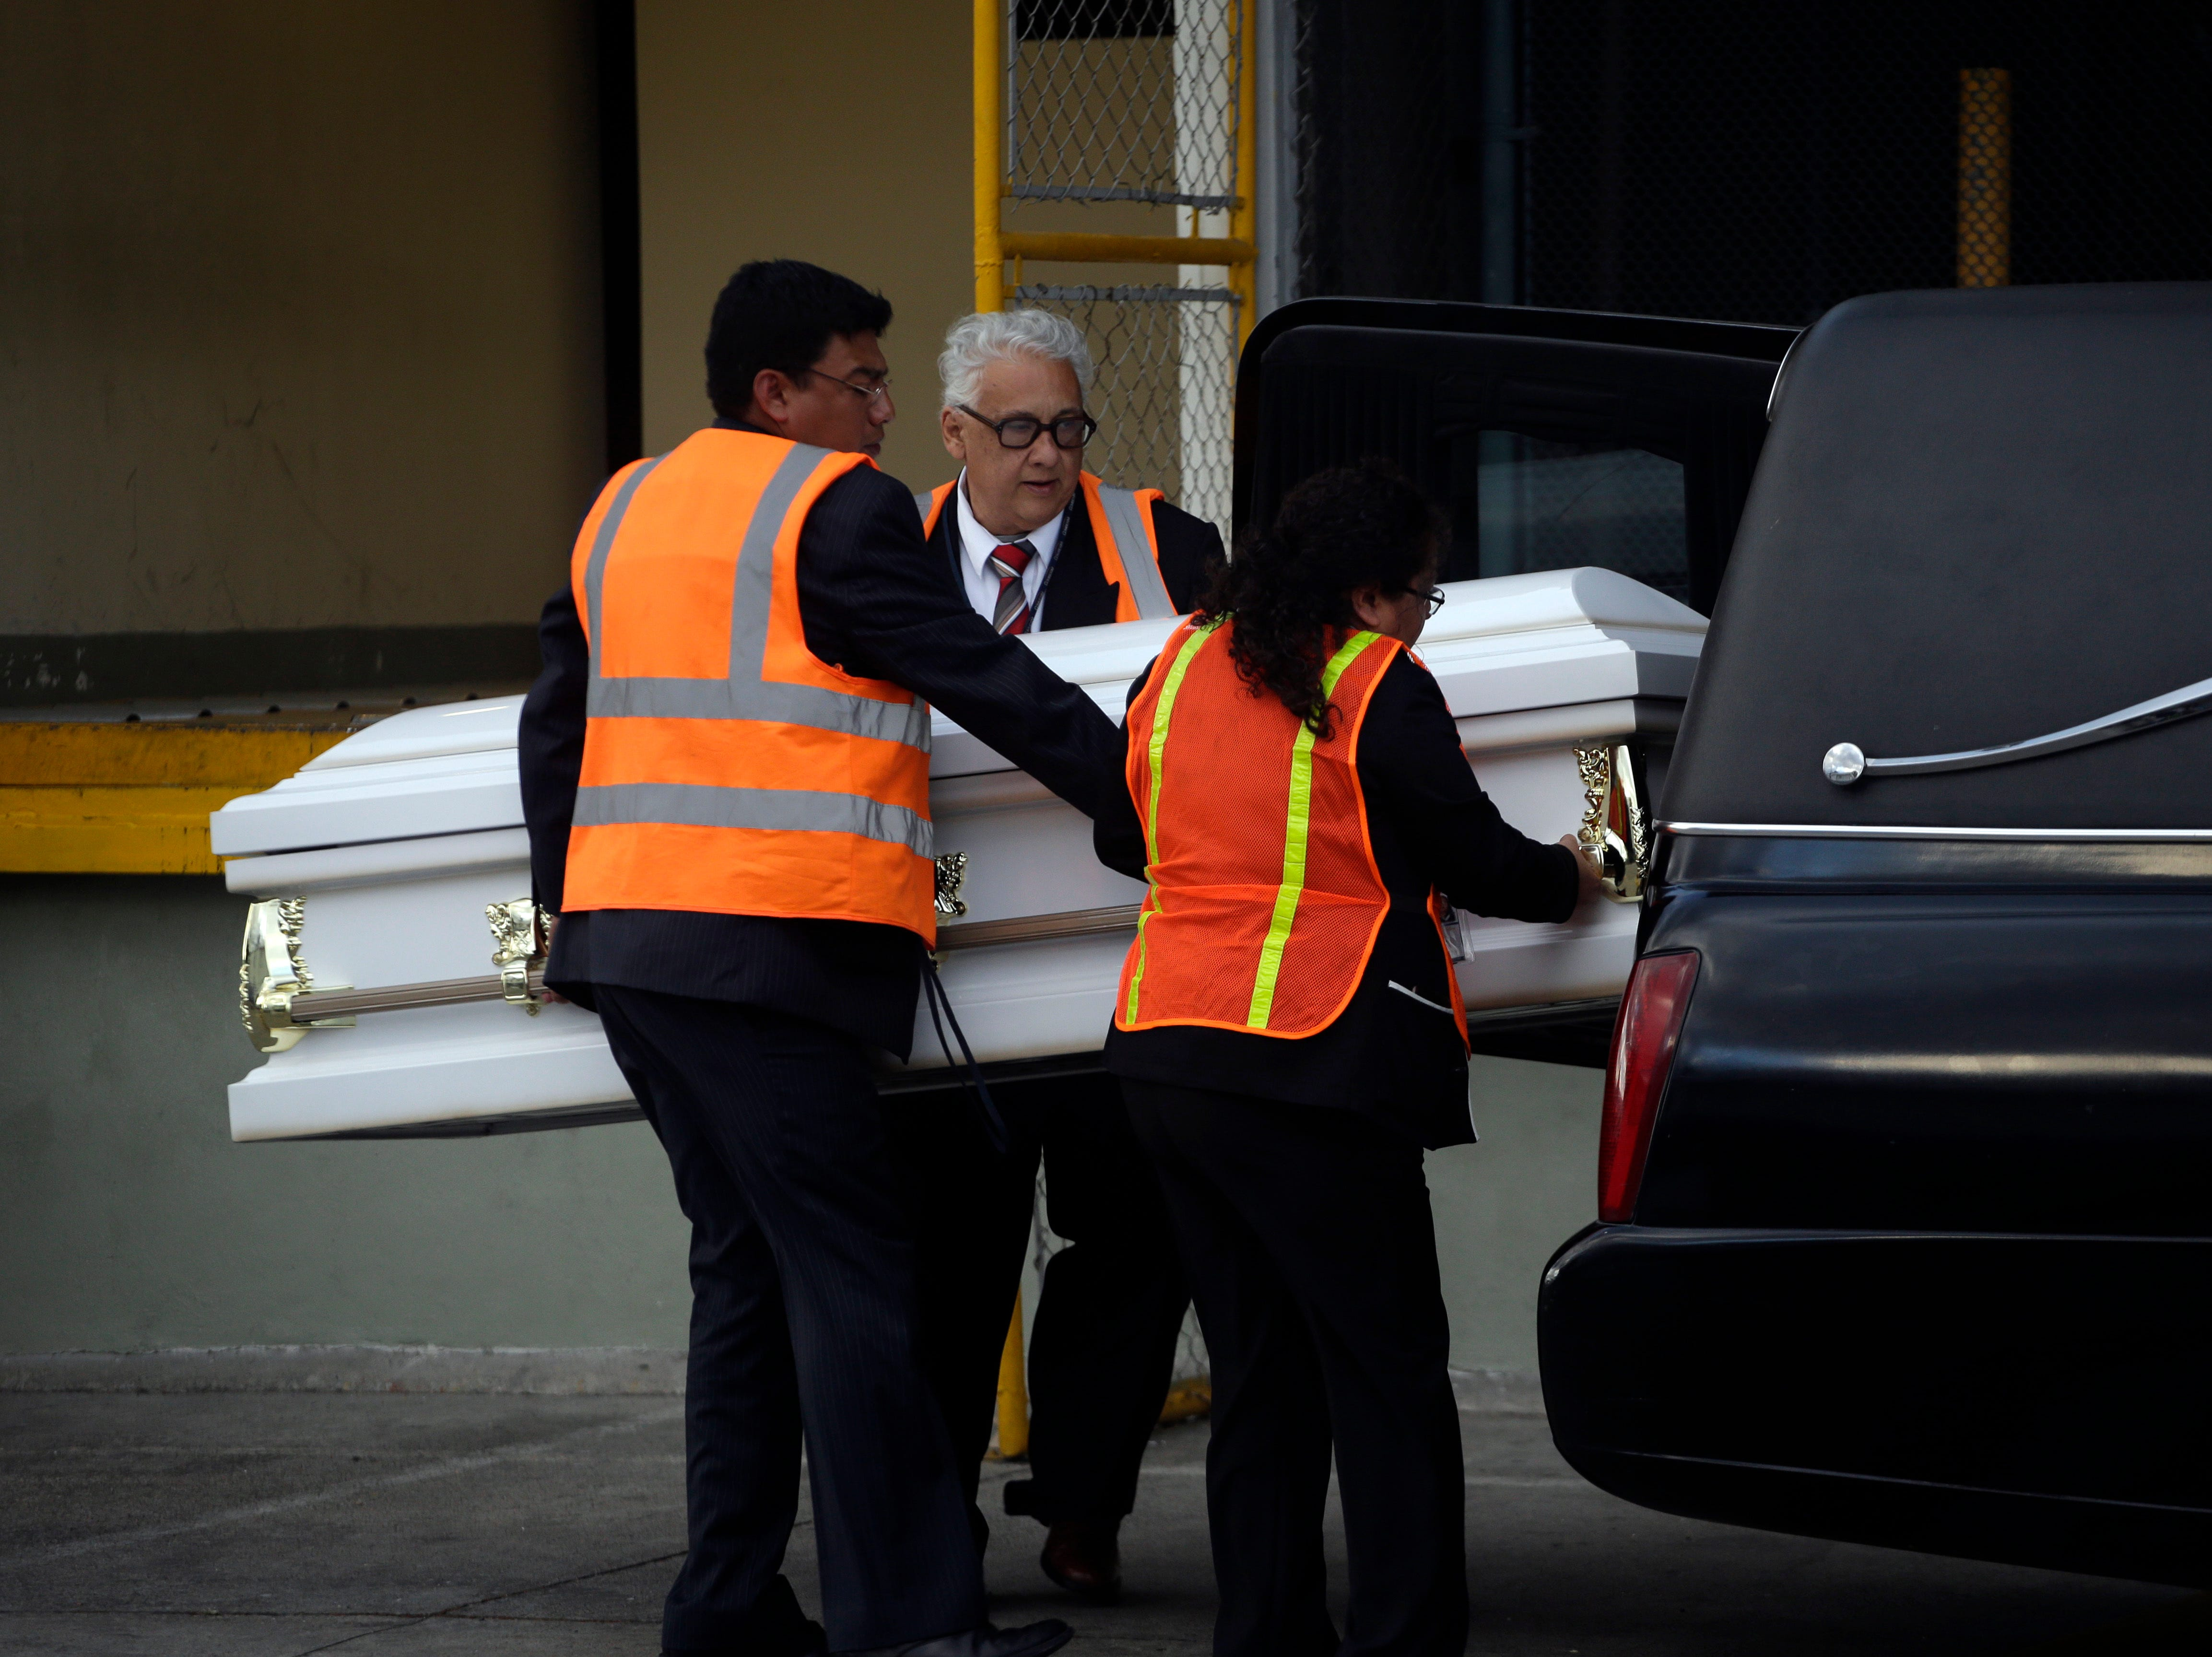 Mortuary employees carry the body of Jakelin Caal Maquin after her remains were repatriated to Guatemala, at La Aurora International Airport in Guatemala City, Sunday, Dec. 23, 2018. Caal Maquin, 7, died in a Texas hospital two days after being taken into custody by U.S. Border Patrol agents in a remote stretch of New Mexico desert.